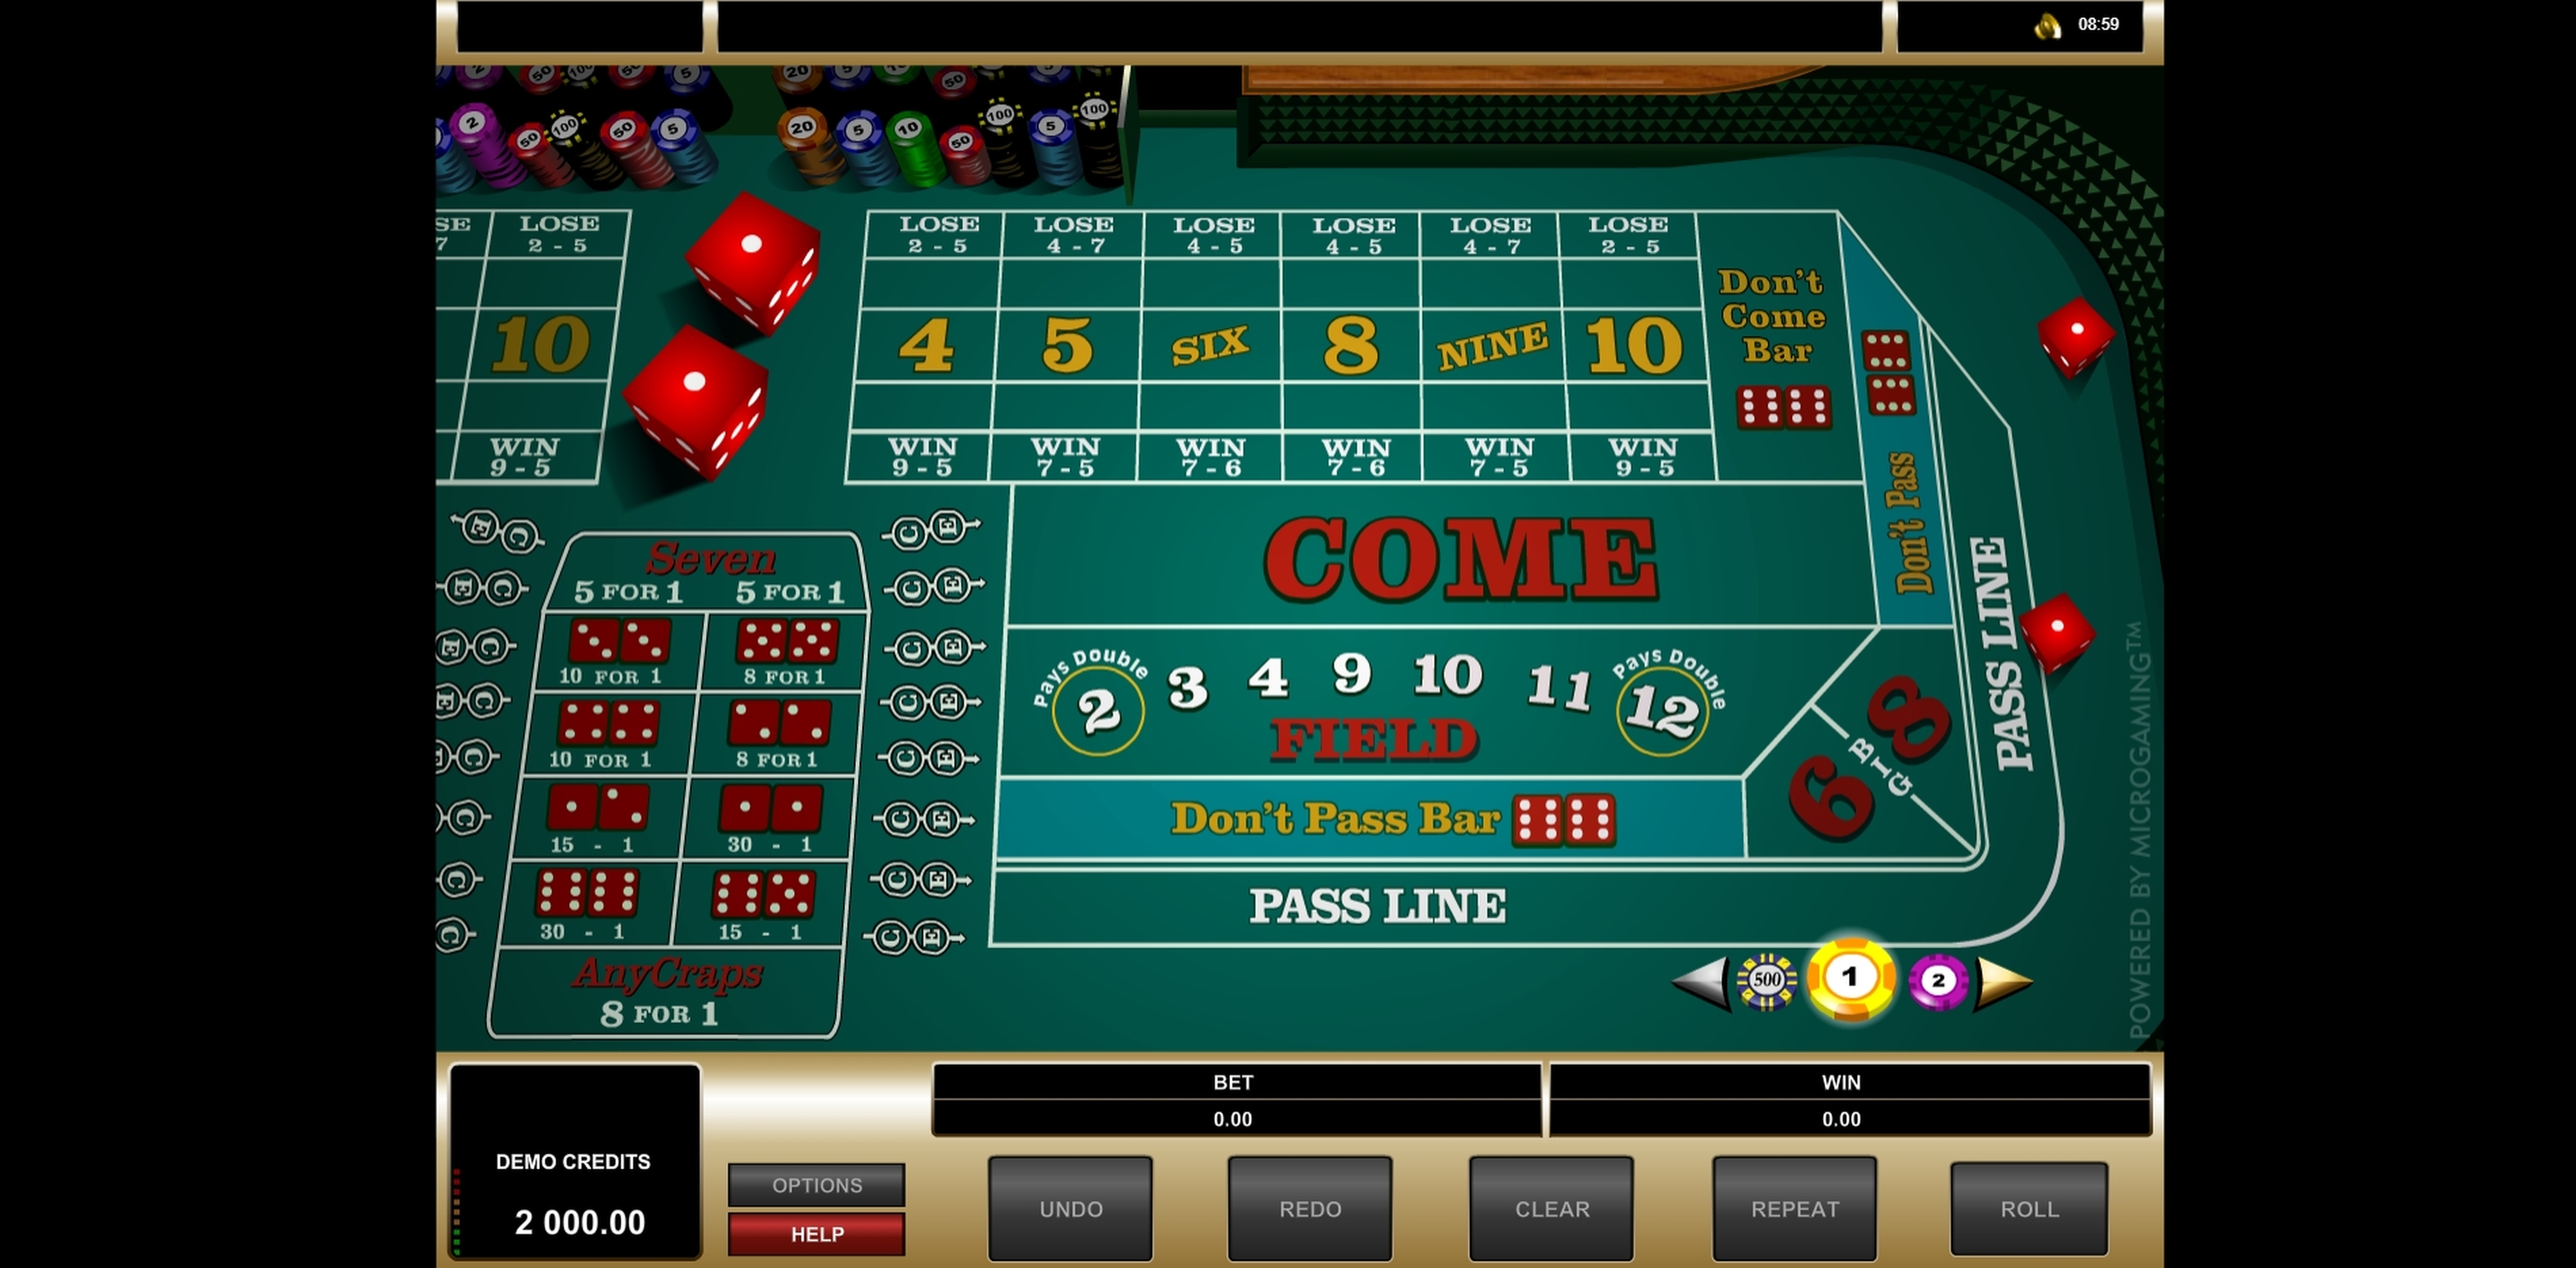 Reels in Craps (Microgaming) Slot Game by Microgaming